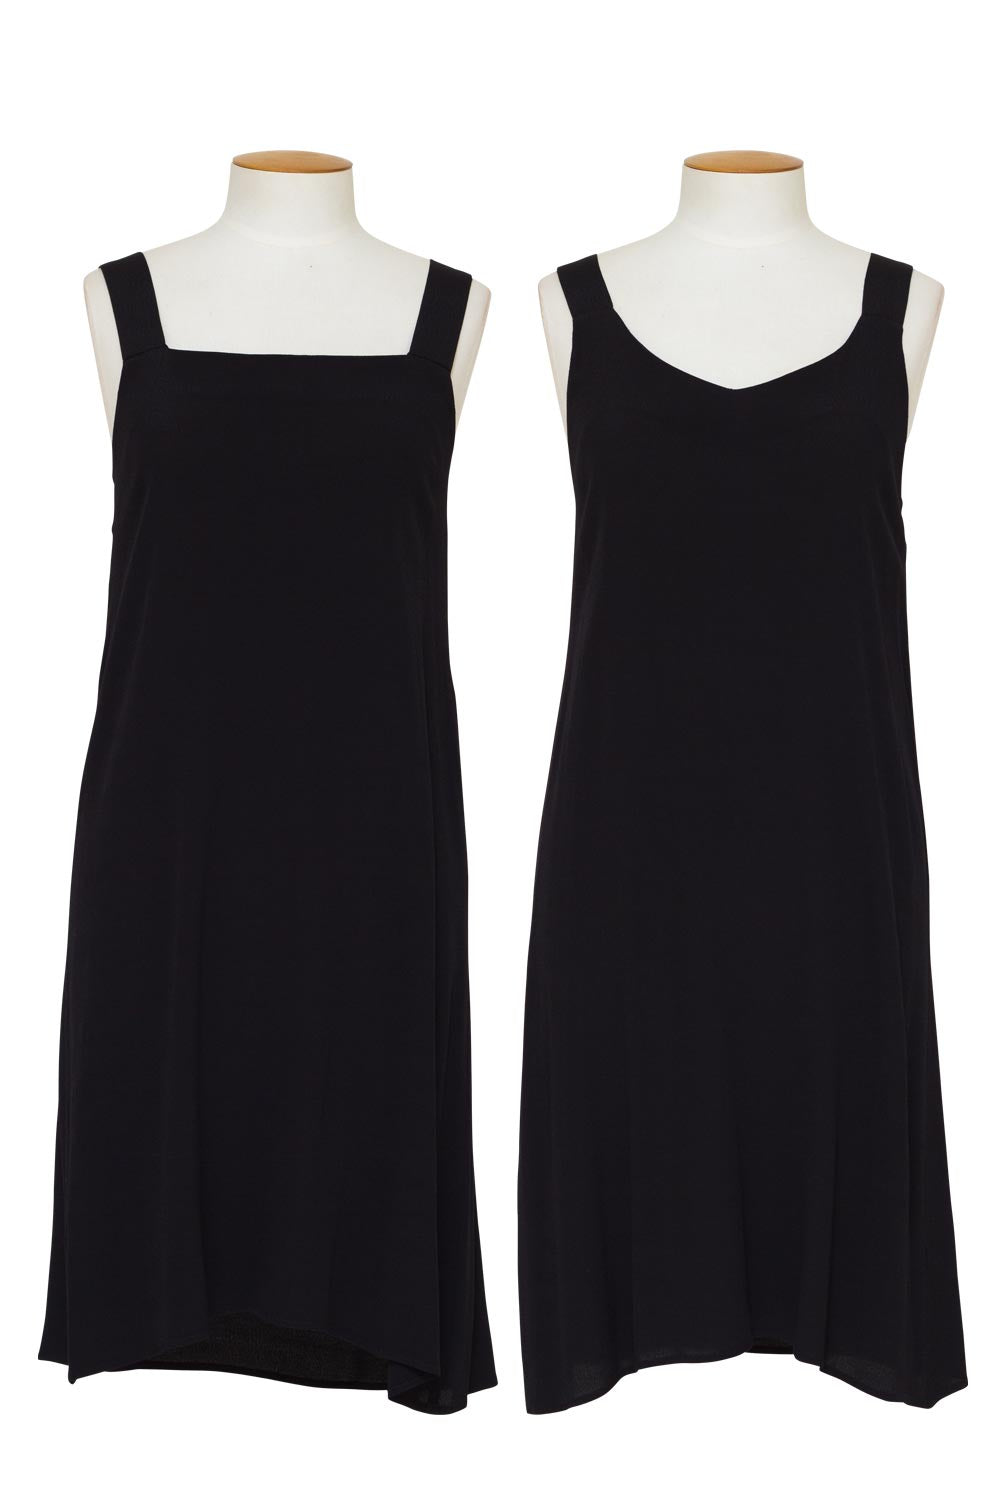 obi-silhouette-slip-dress